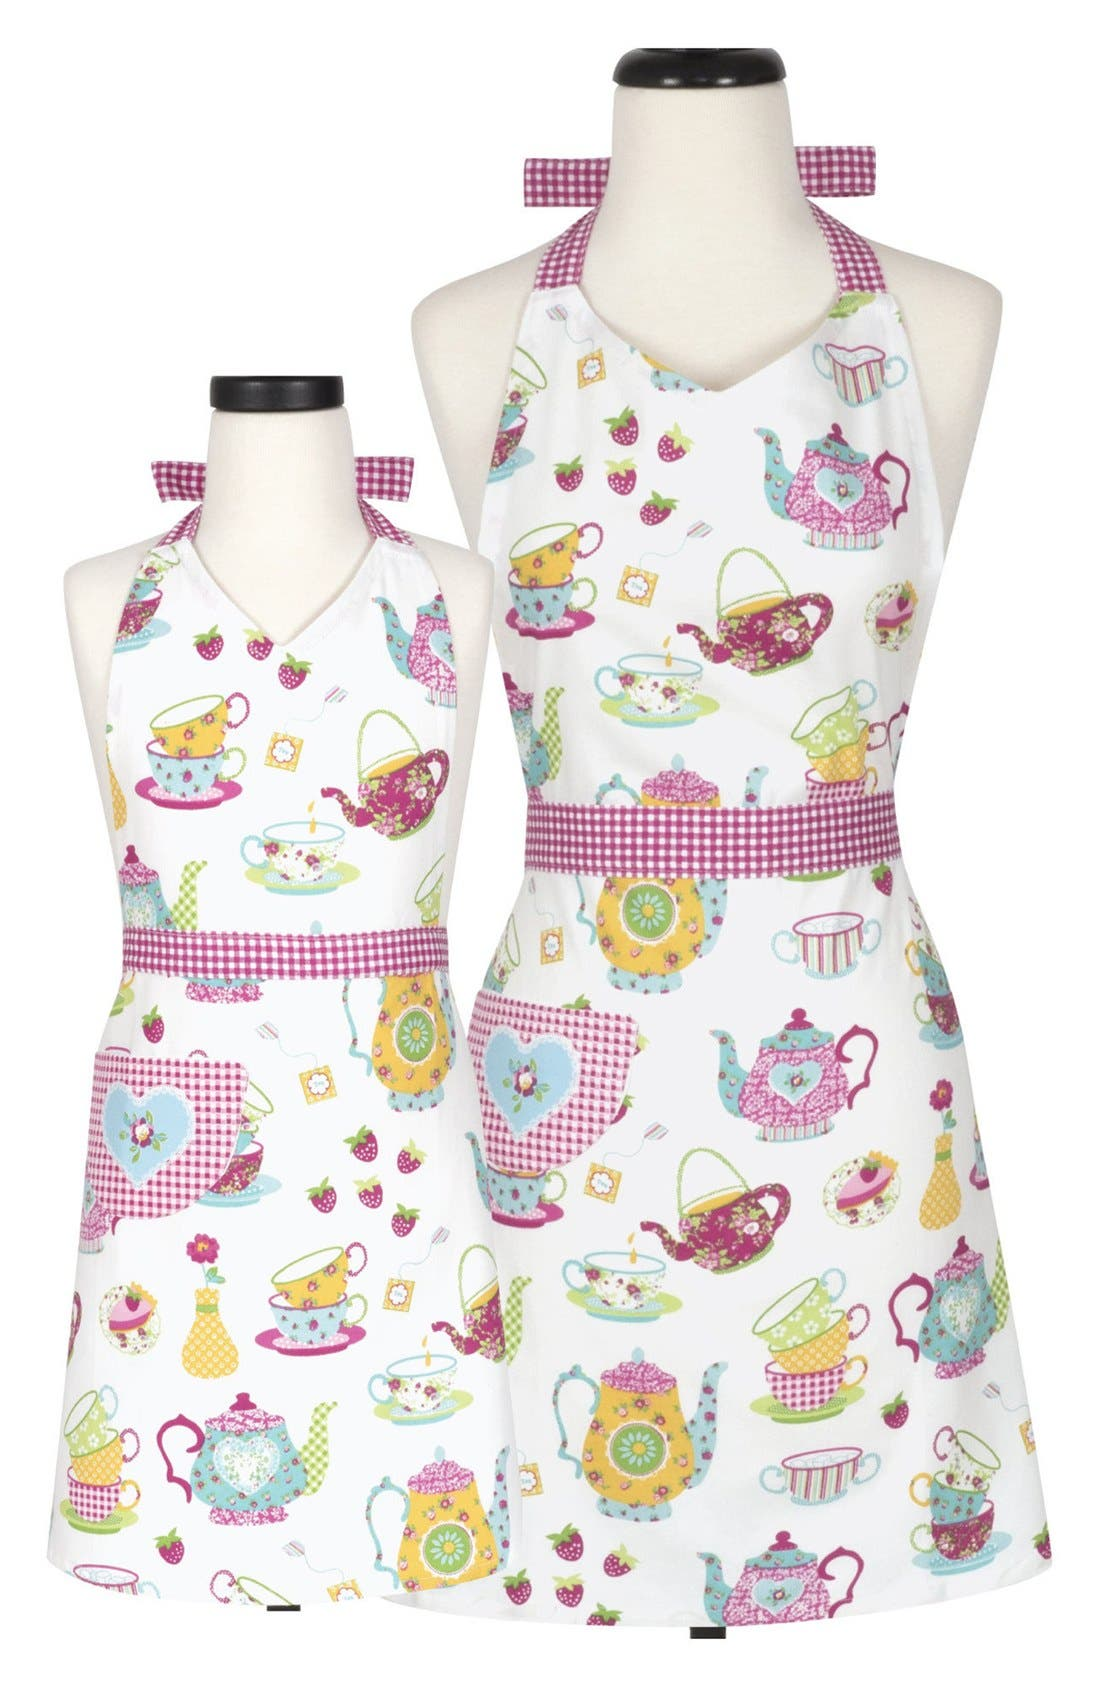 Vintage Aprons, Retro Aprons, Old Fashioned Aprons & Patterns Handstand Kitchen Tea Party Adult  Kid Apron Set Size One Size - Pink $45.00 AT vintagedancer.com